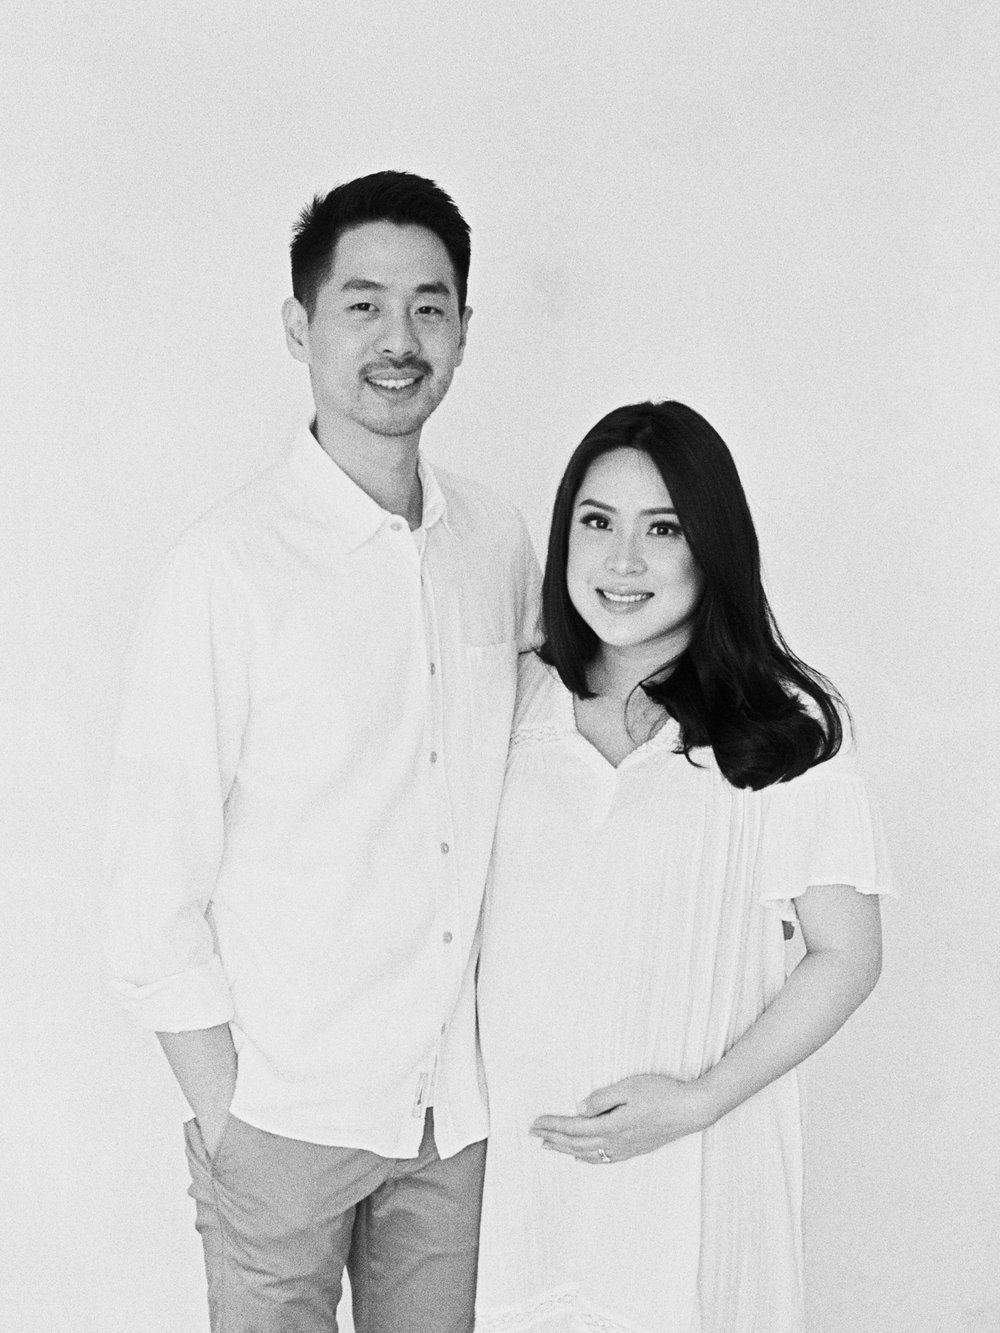 Gaby and Tim-Relaxed-Airy-Simple-Maternity Portrait Photoshoot-At Home-Jakarta-Studio June-Film Photography & Styling-30.jpg